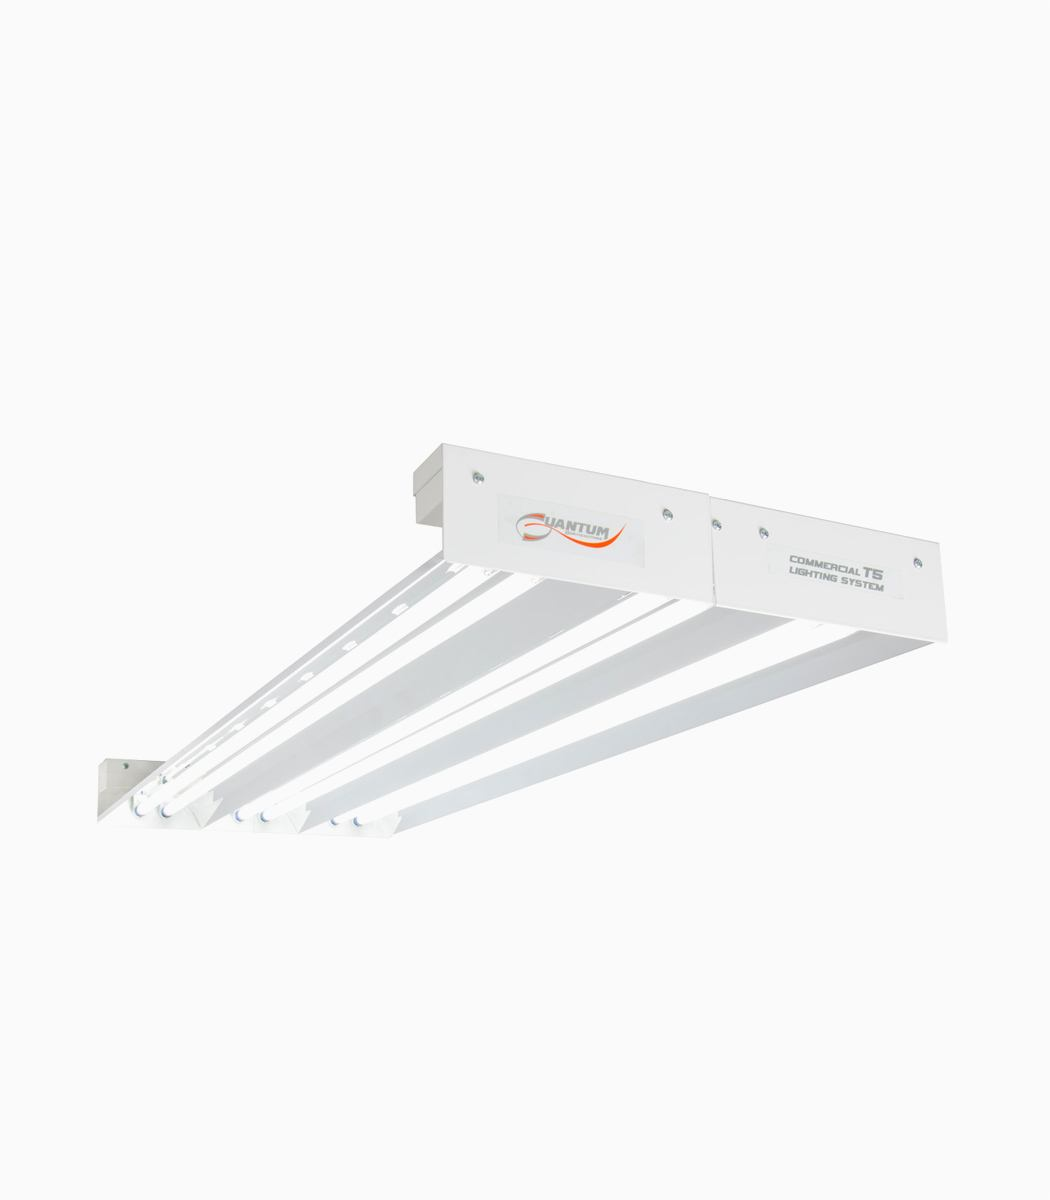 Quantum T5 324W 4' 6-Tube Fixture No Lamps